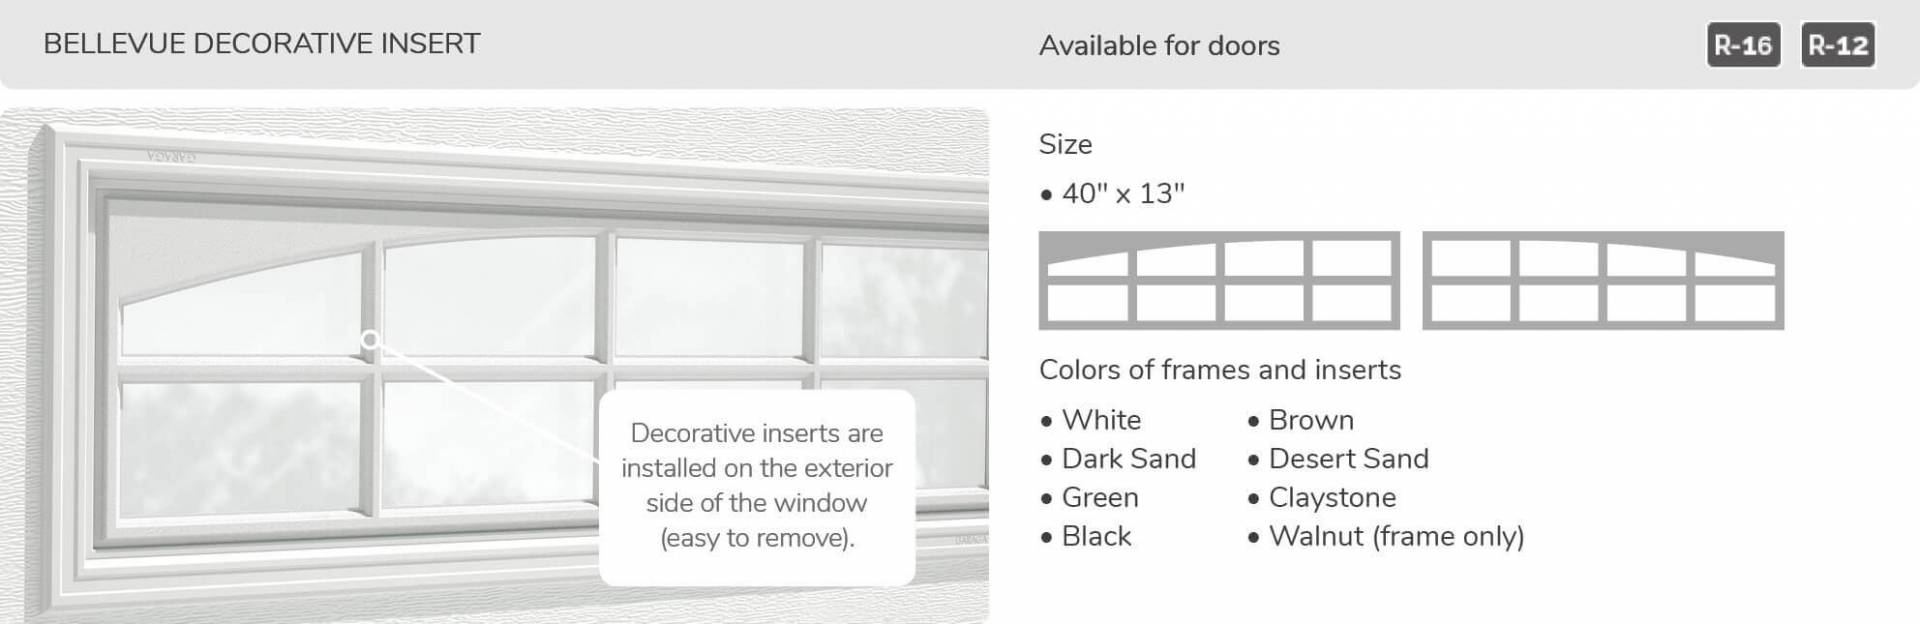 Bellevue Decorative Insert, 40' x 13', available for doors R-16 and R-12